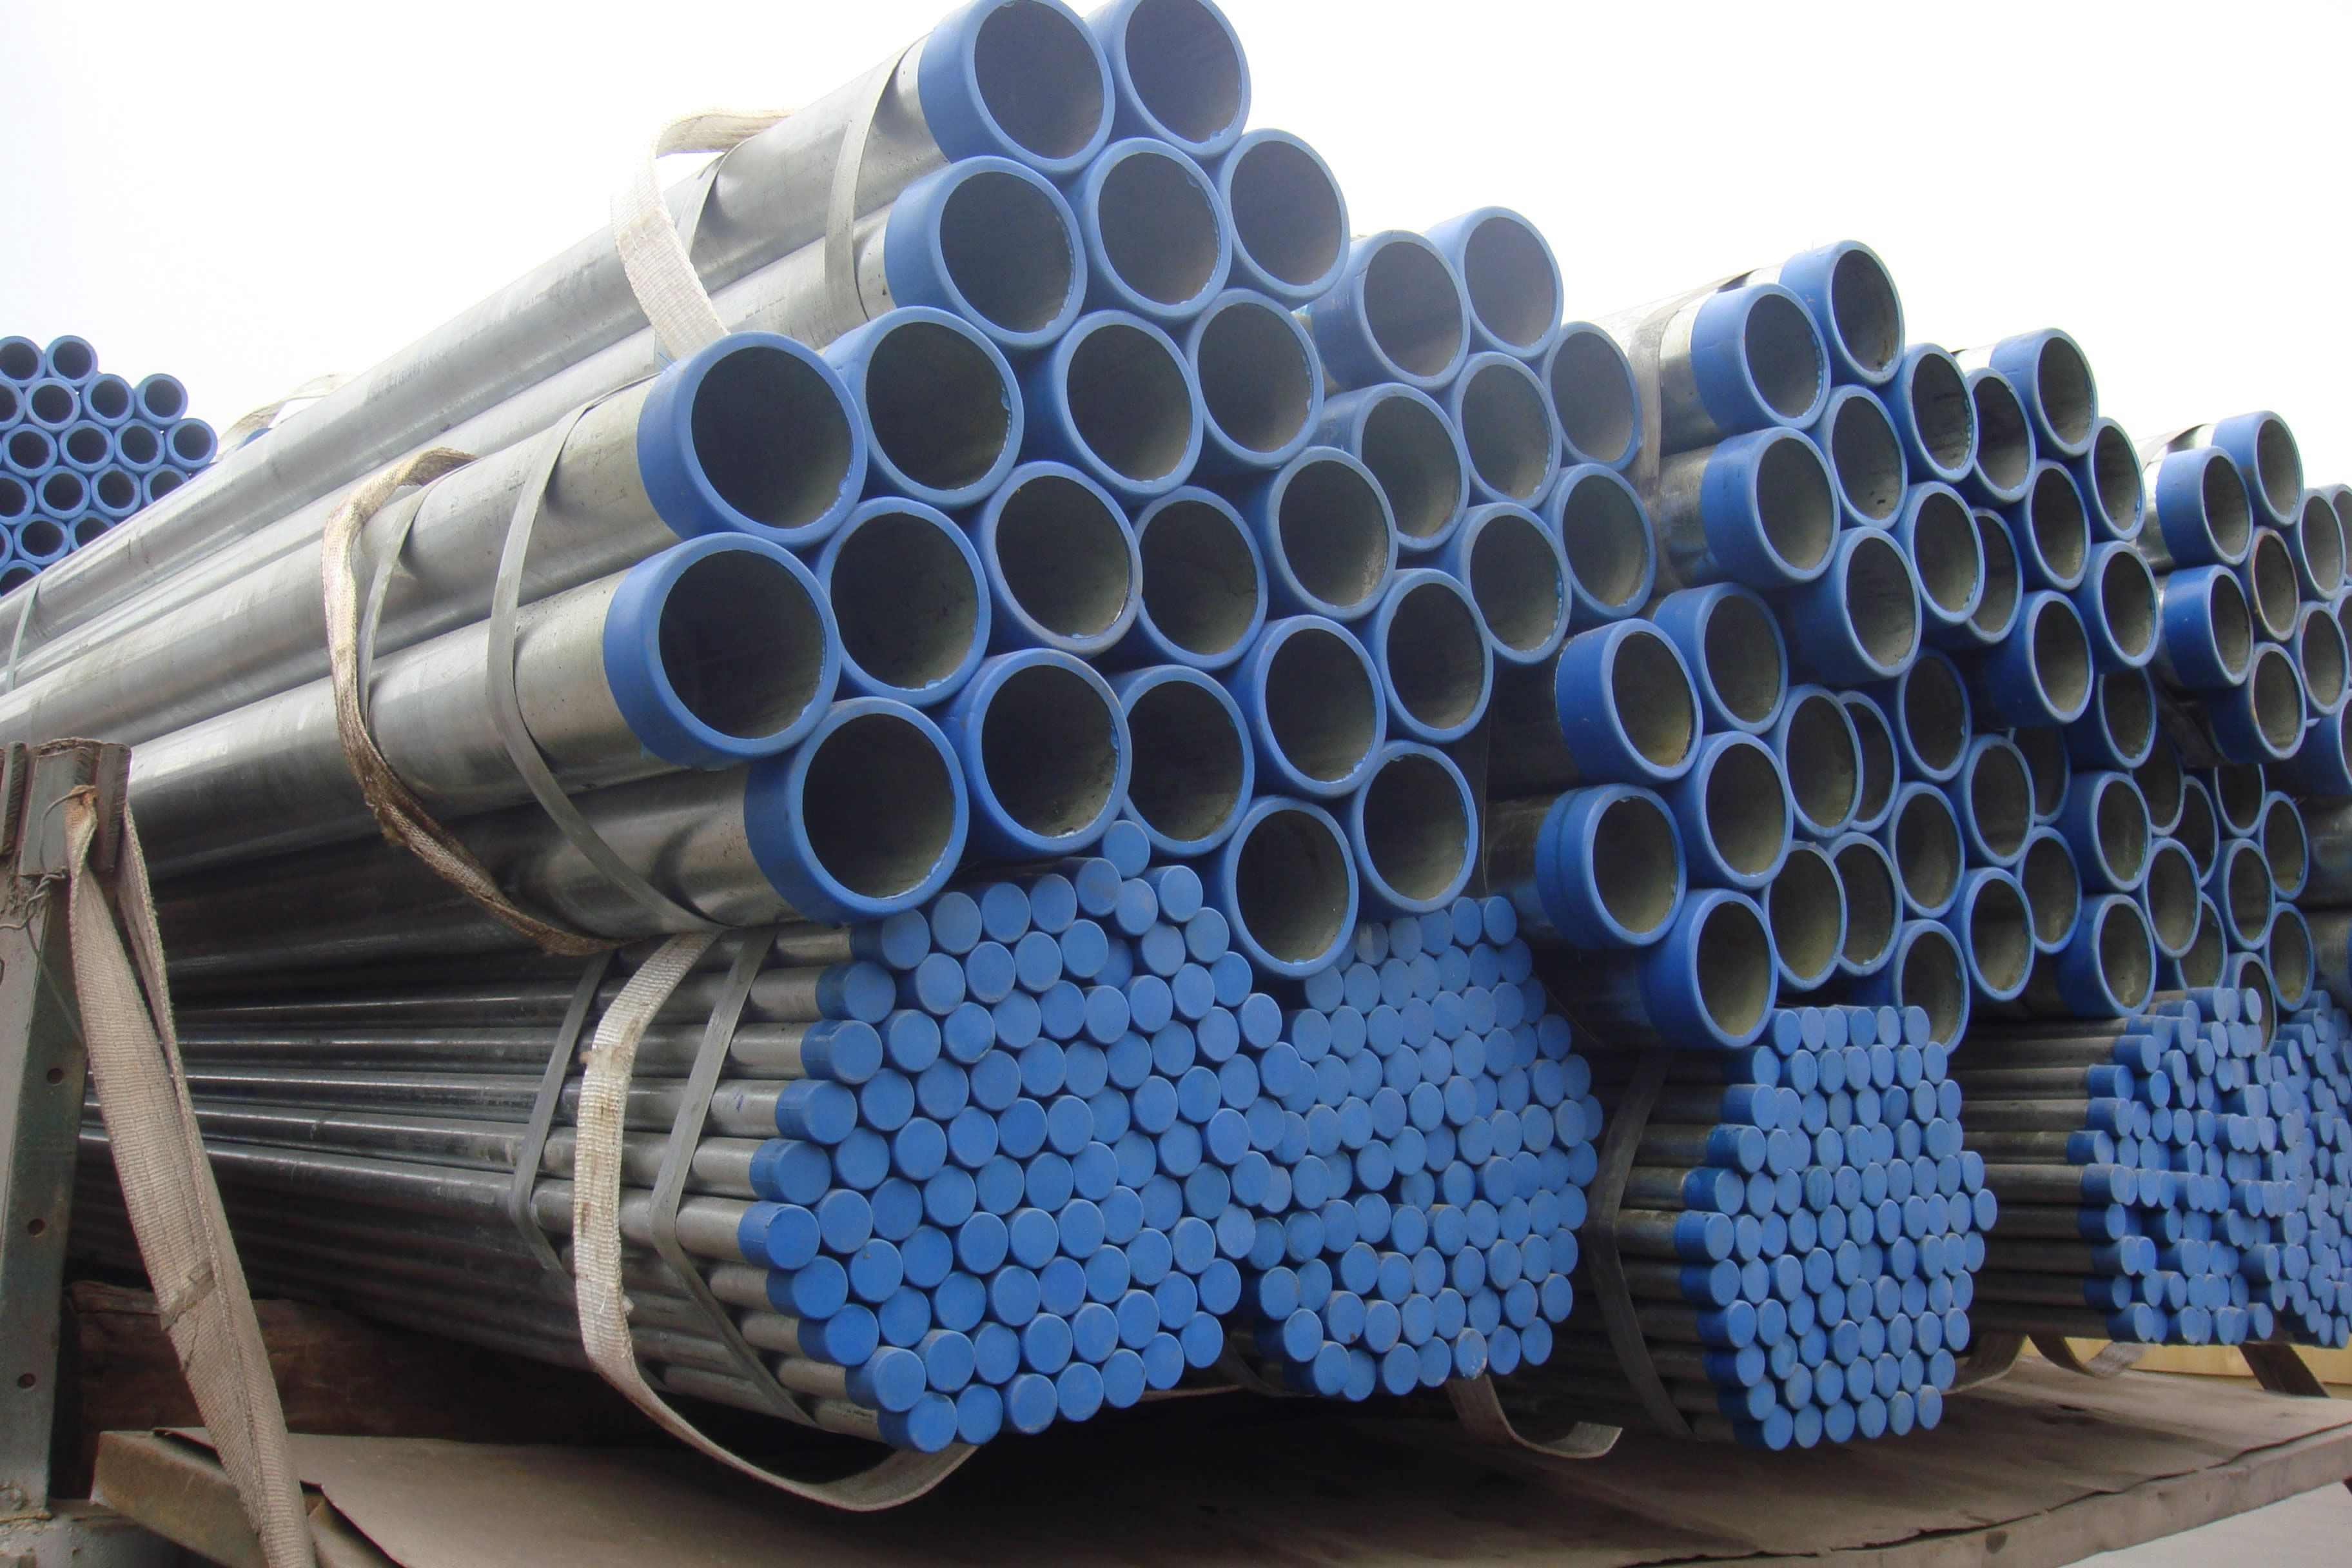 Avail High Quality with Latest Designs PPR Pipe & Plumbing Pipe ...